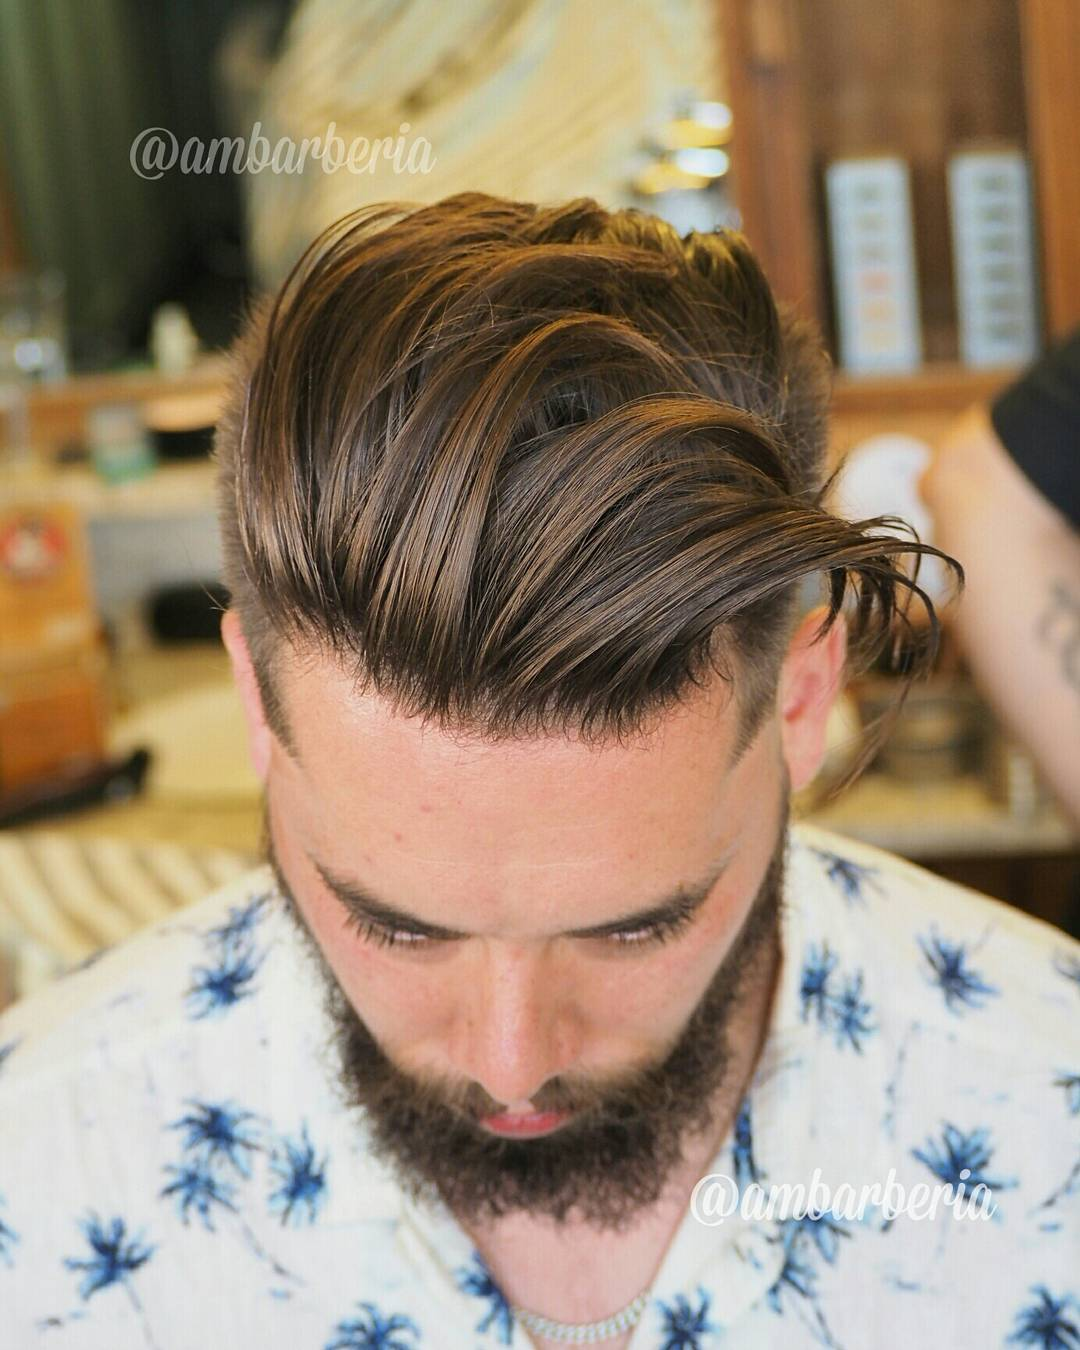 ambarberia-long-natural-hairstyle-men